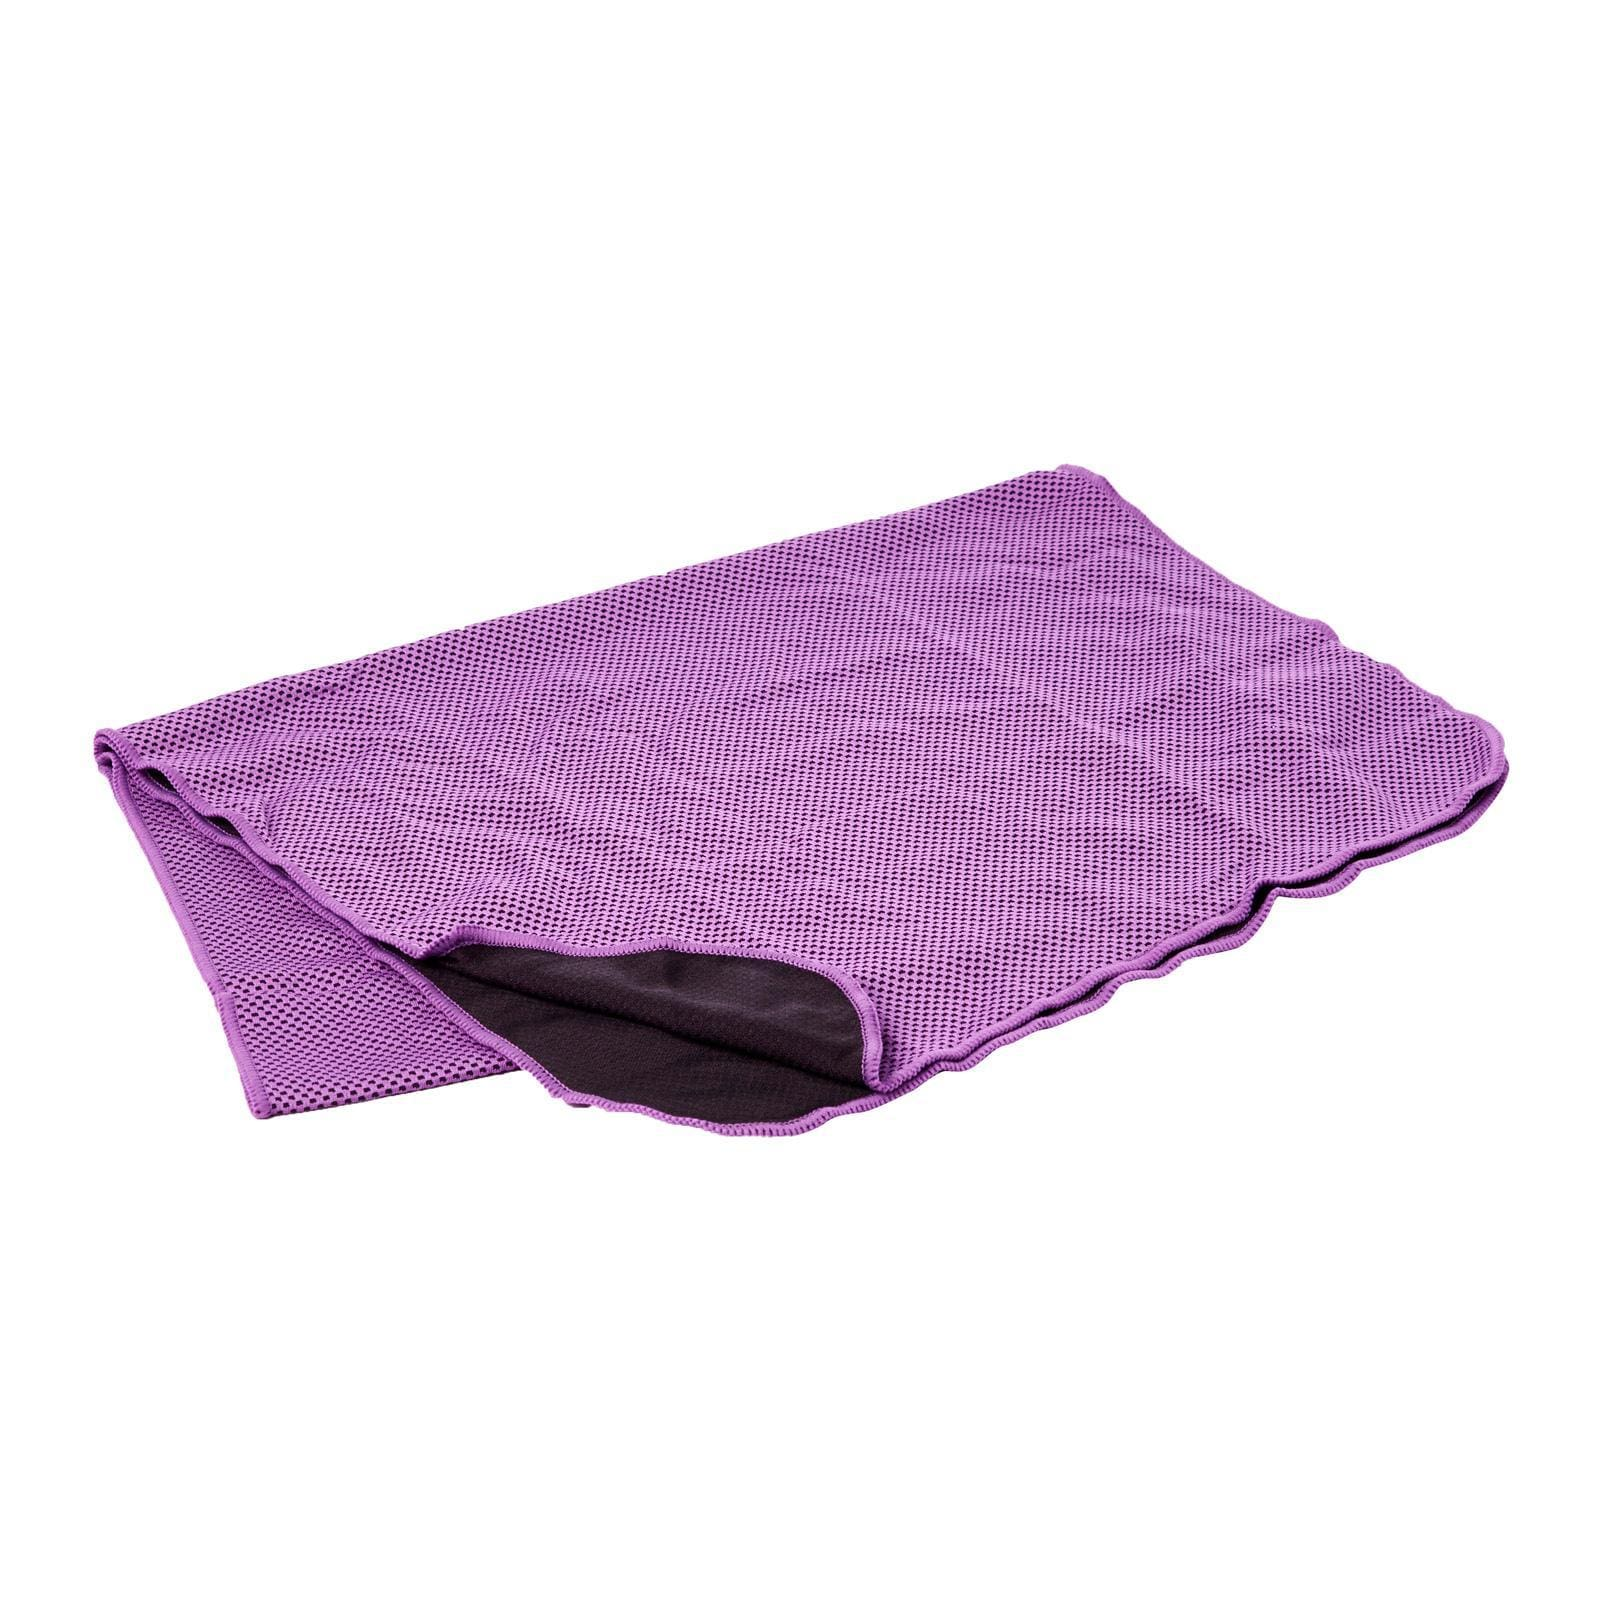 Coolite Sports Towel In Purple